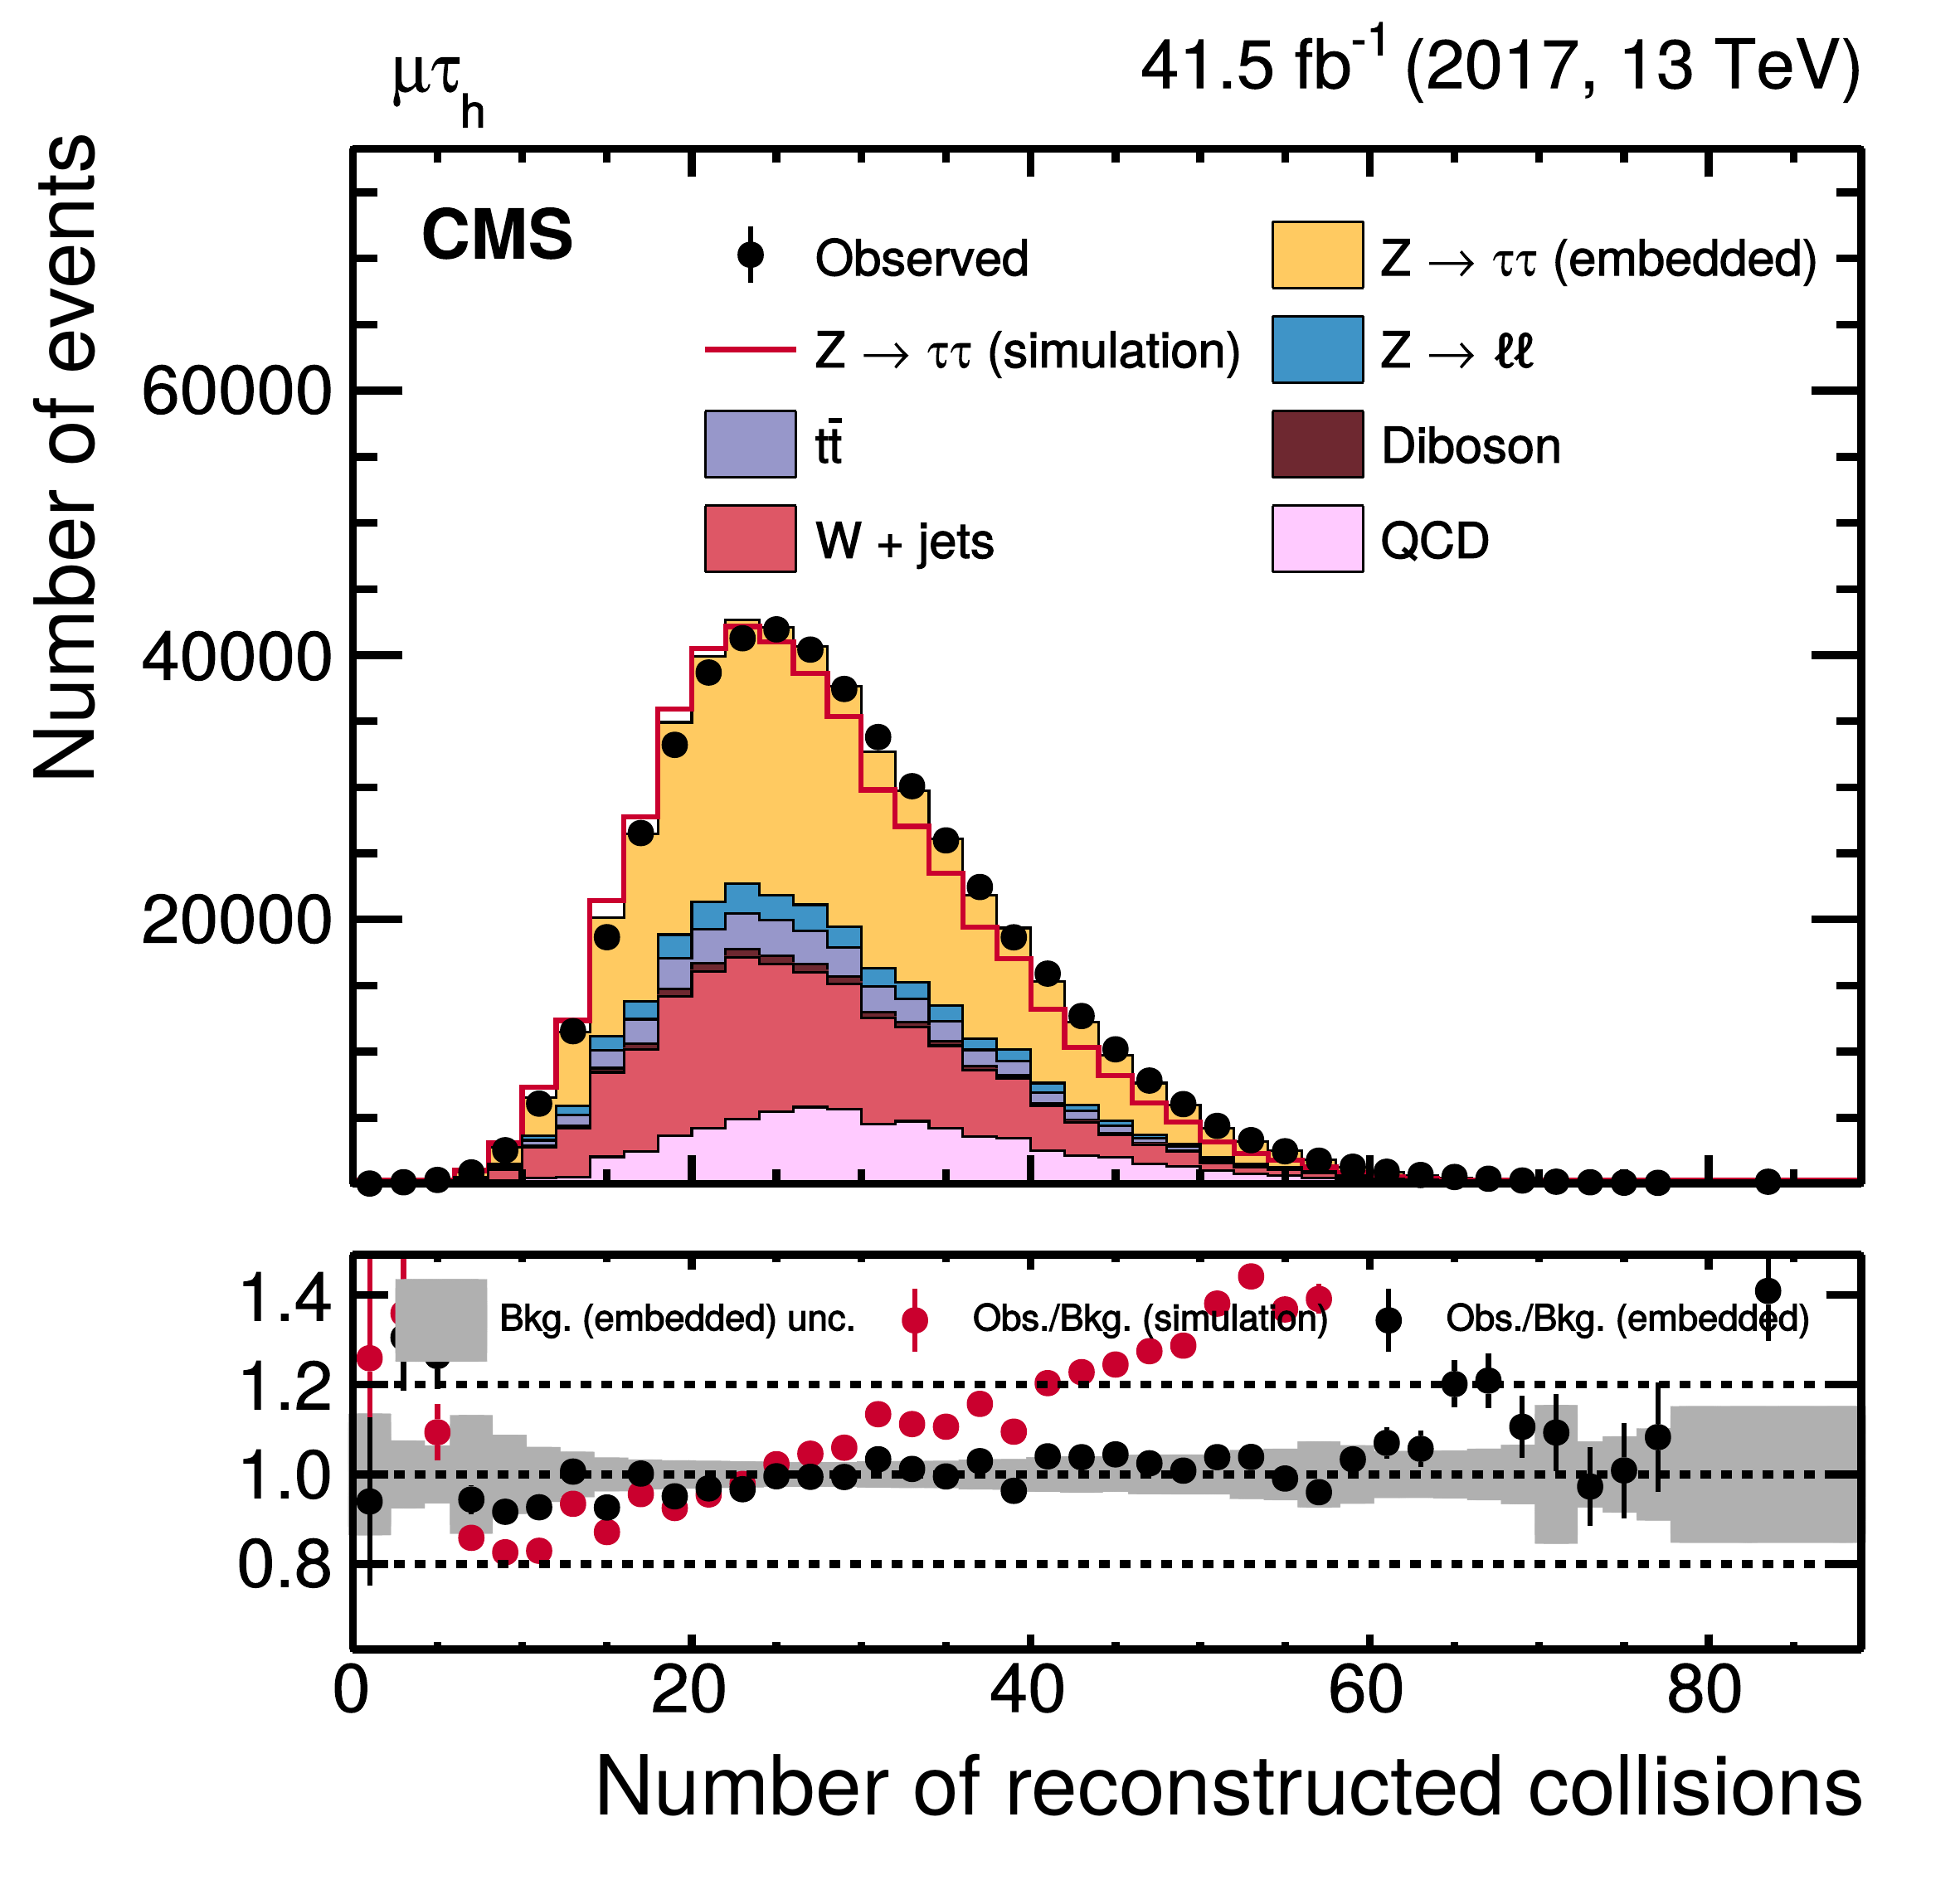 is the number of reconstructed collisions per bunch crossing as reconstructed by the CMS detector